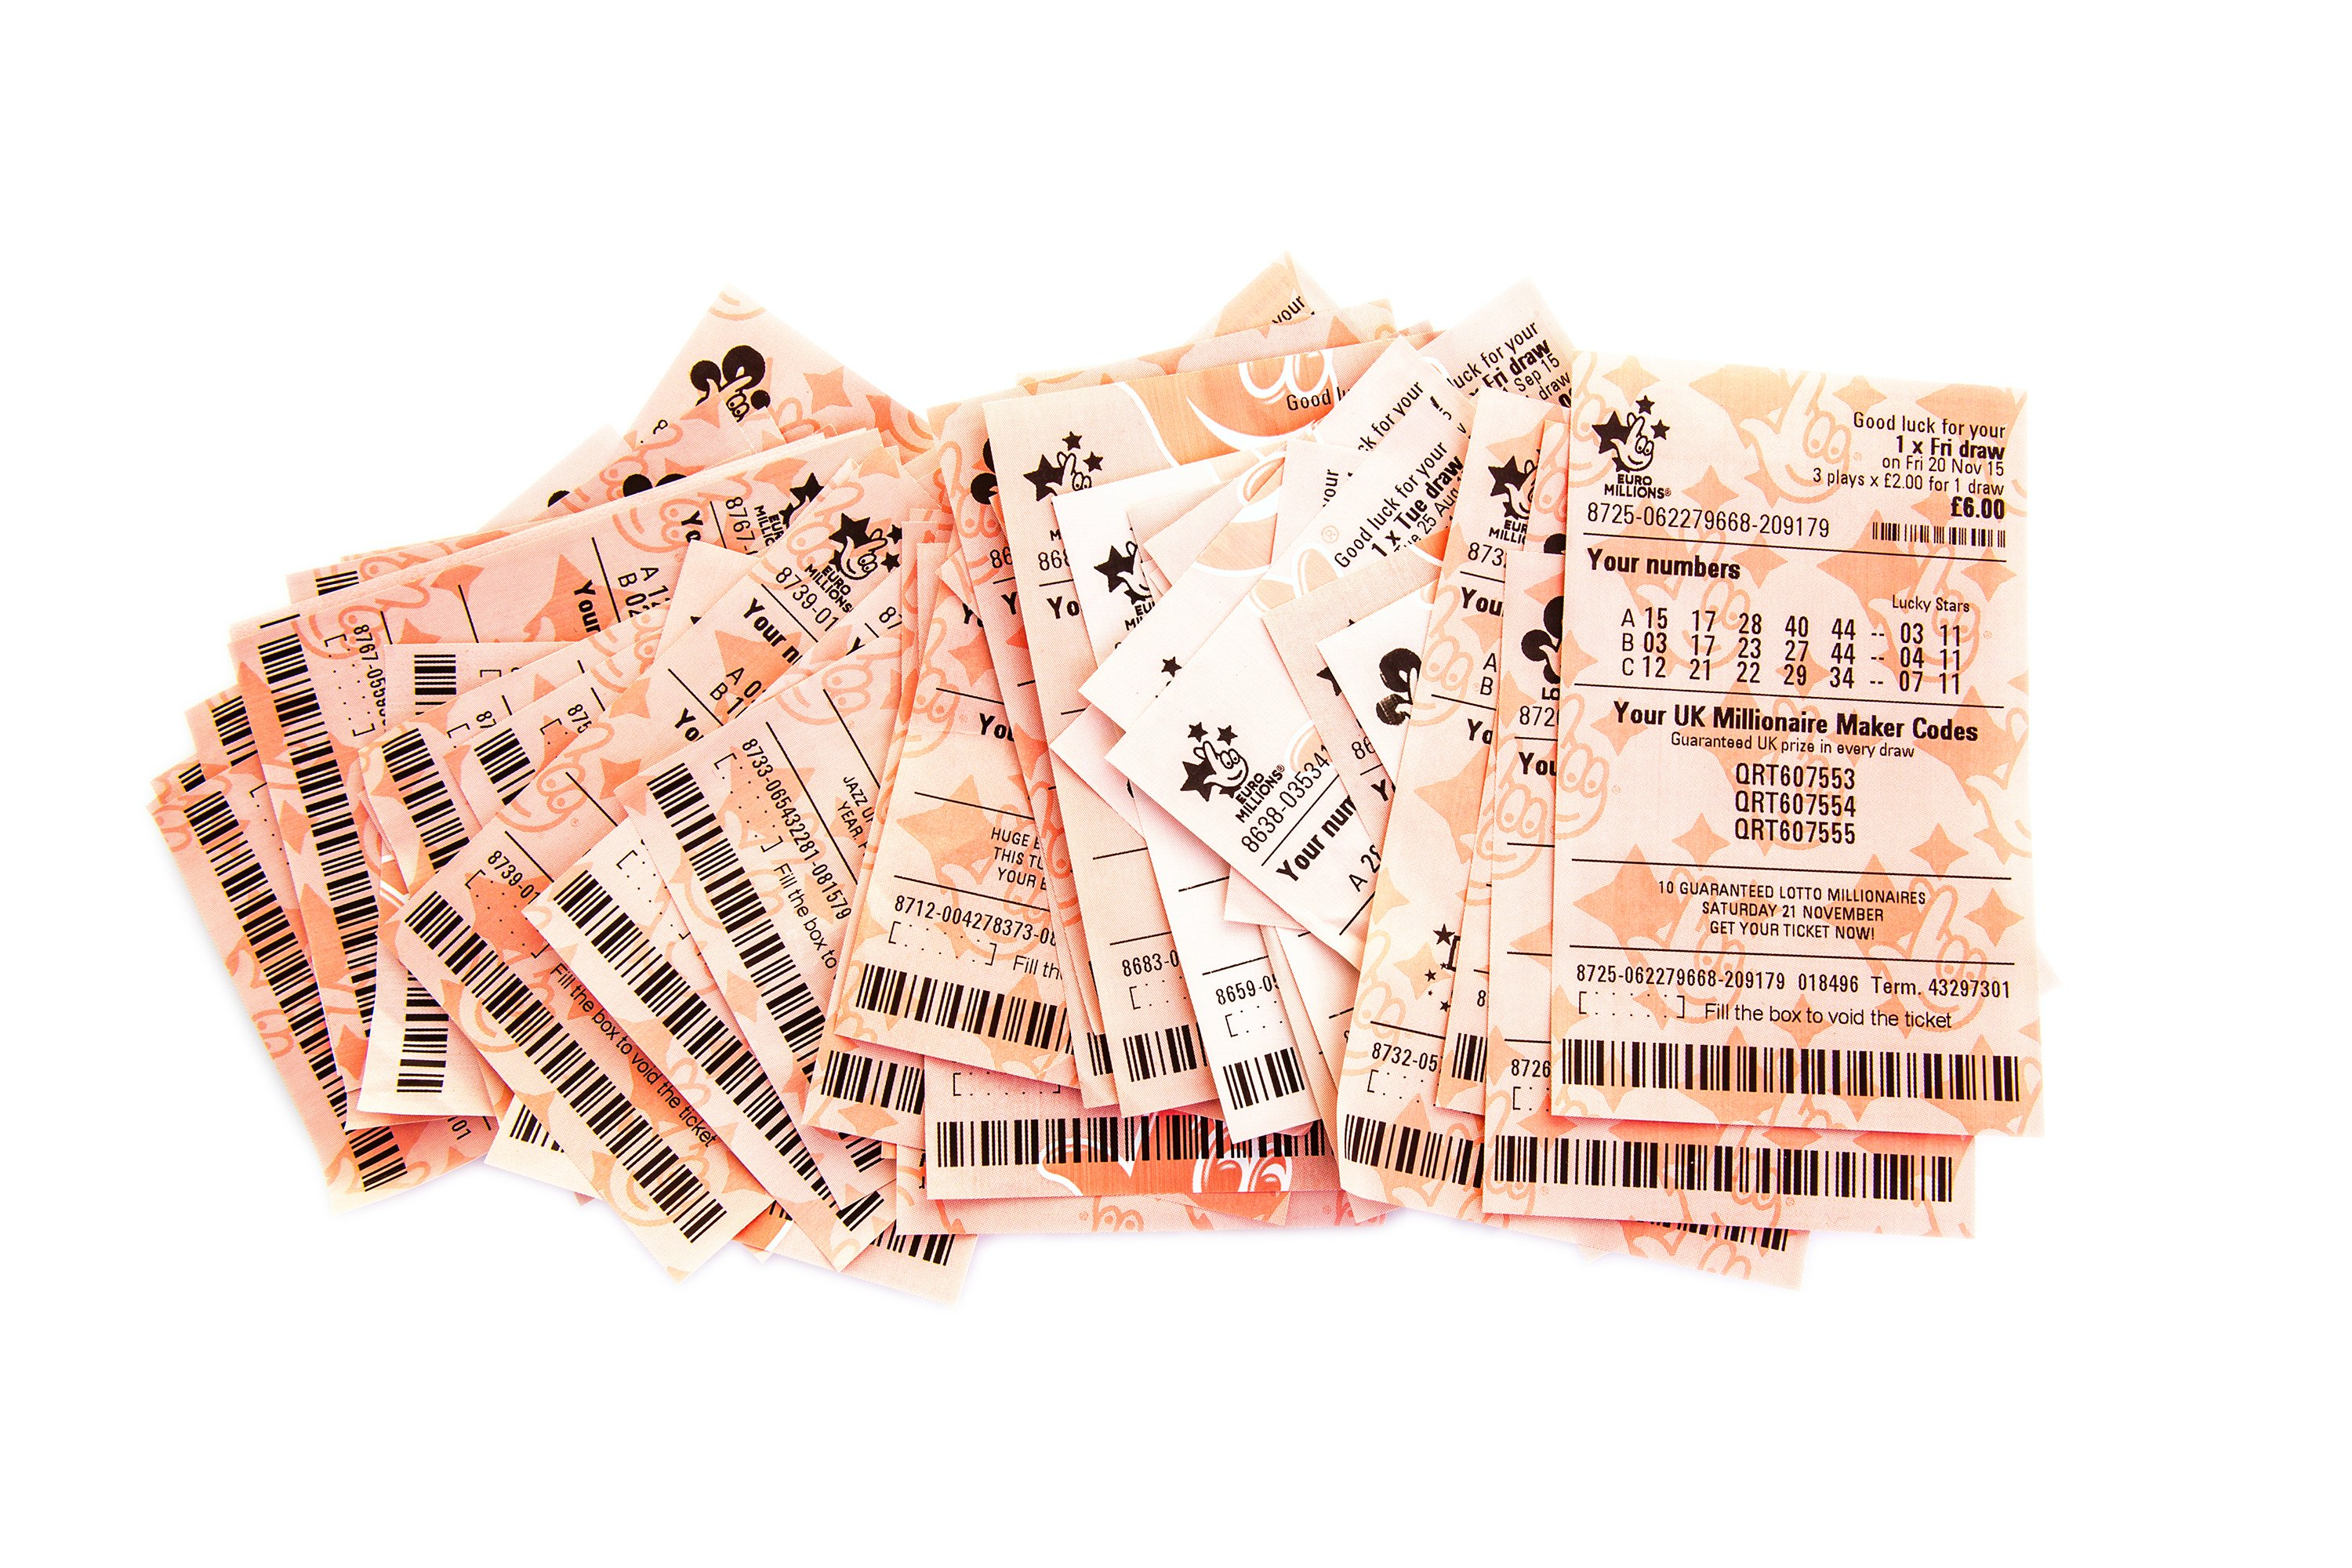 Several lottery tickets without a prize | Photo: Shutterstock